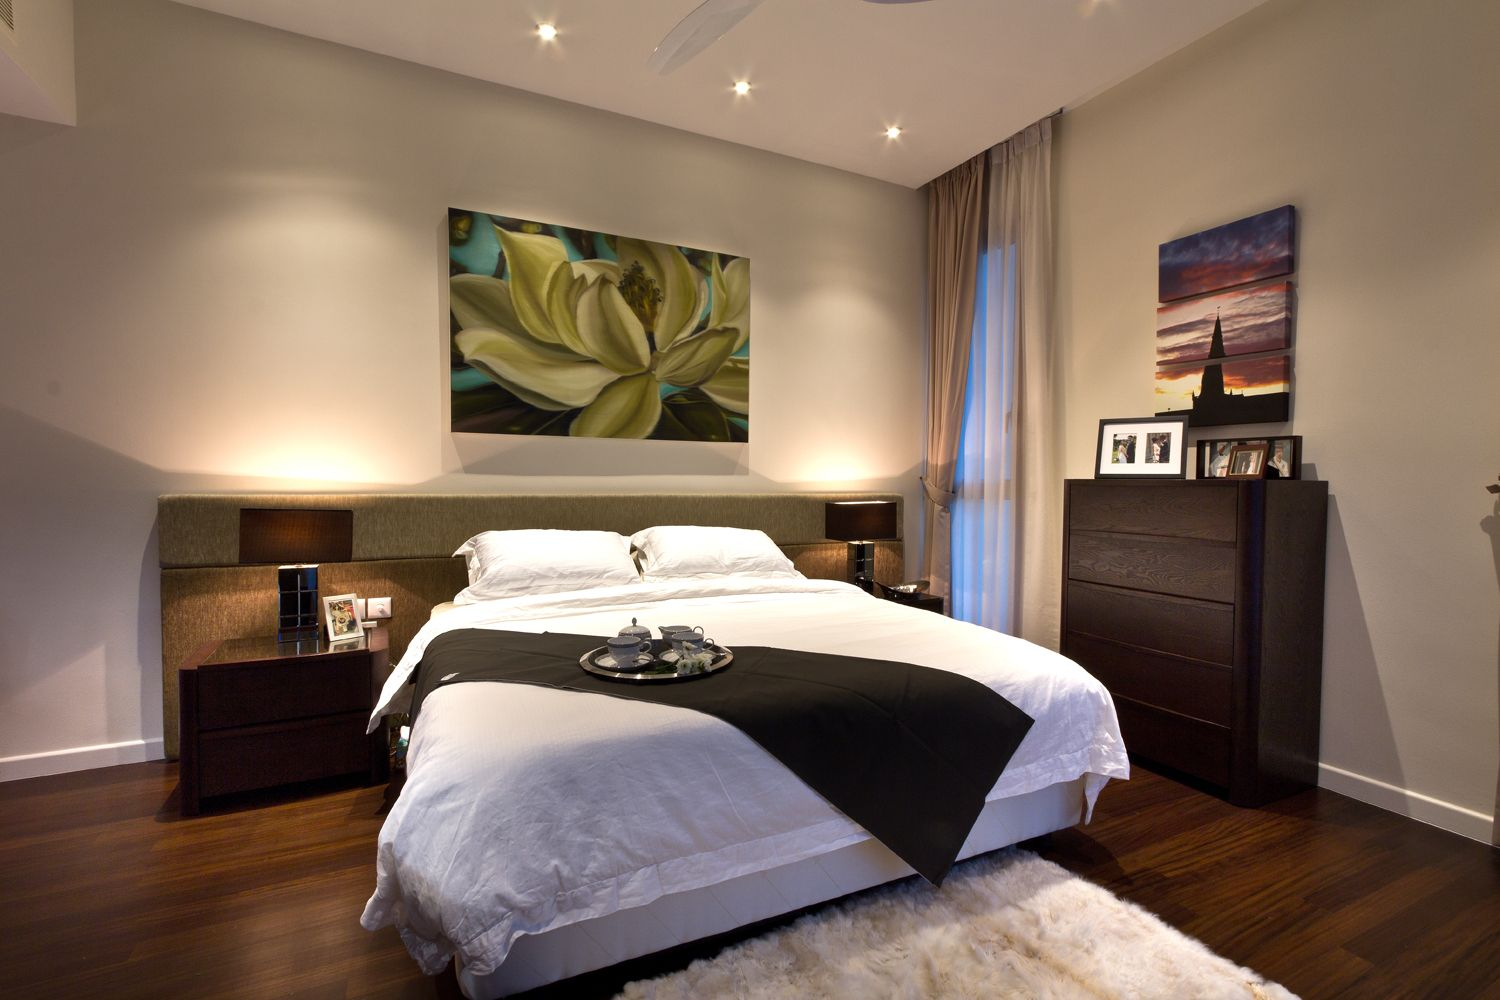 Master bedroom hdb  Home and Decor HDB  Inspired Home Designs  Pinterest  Bedroom